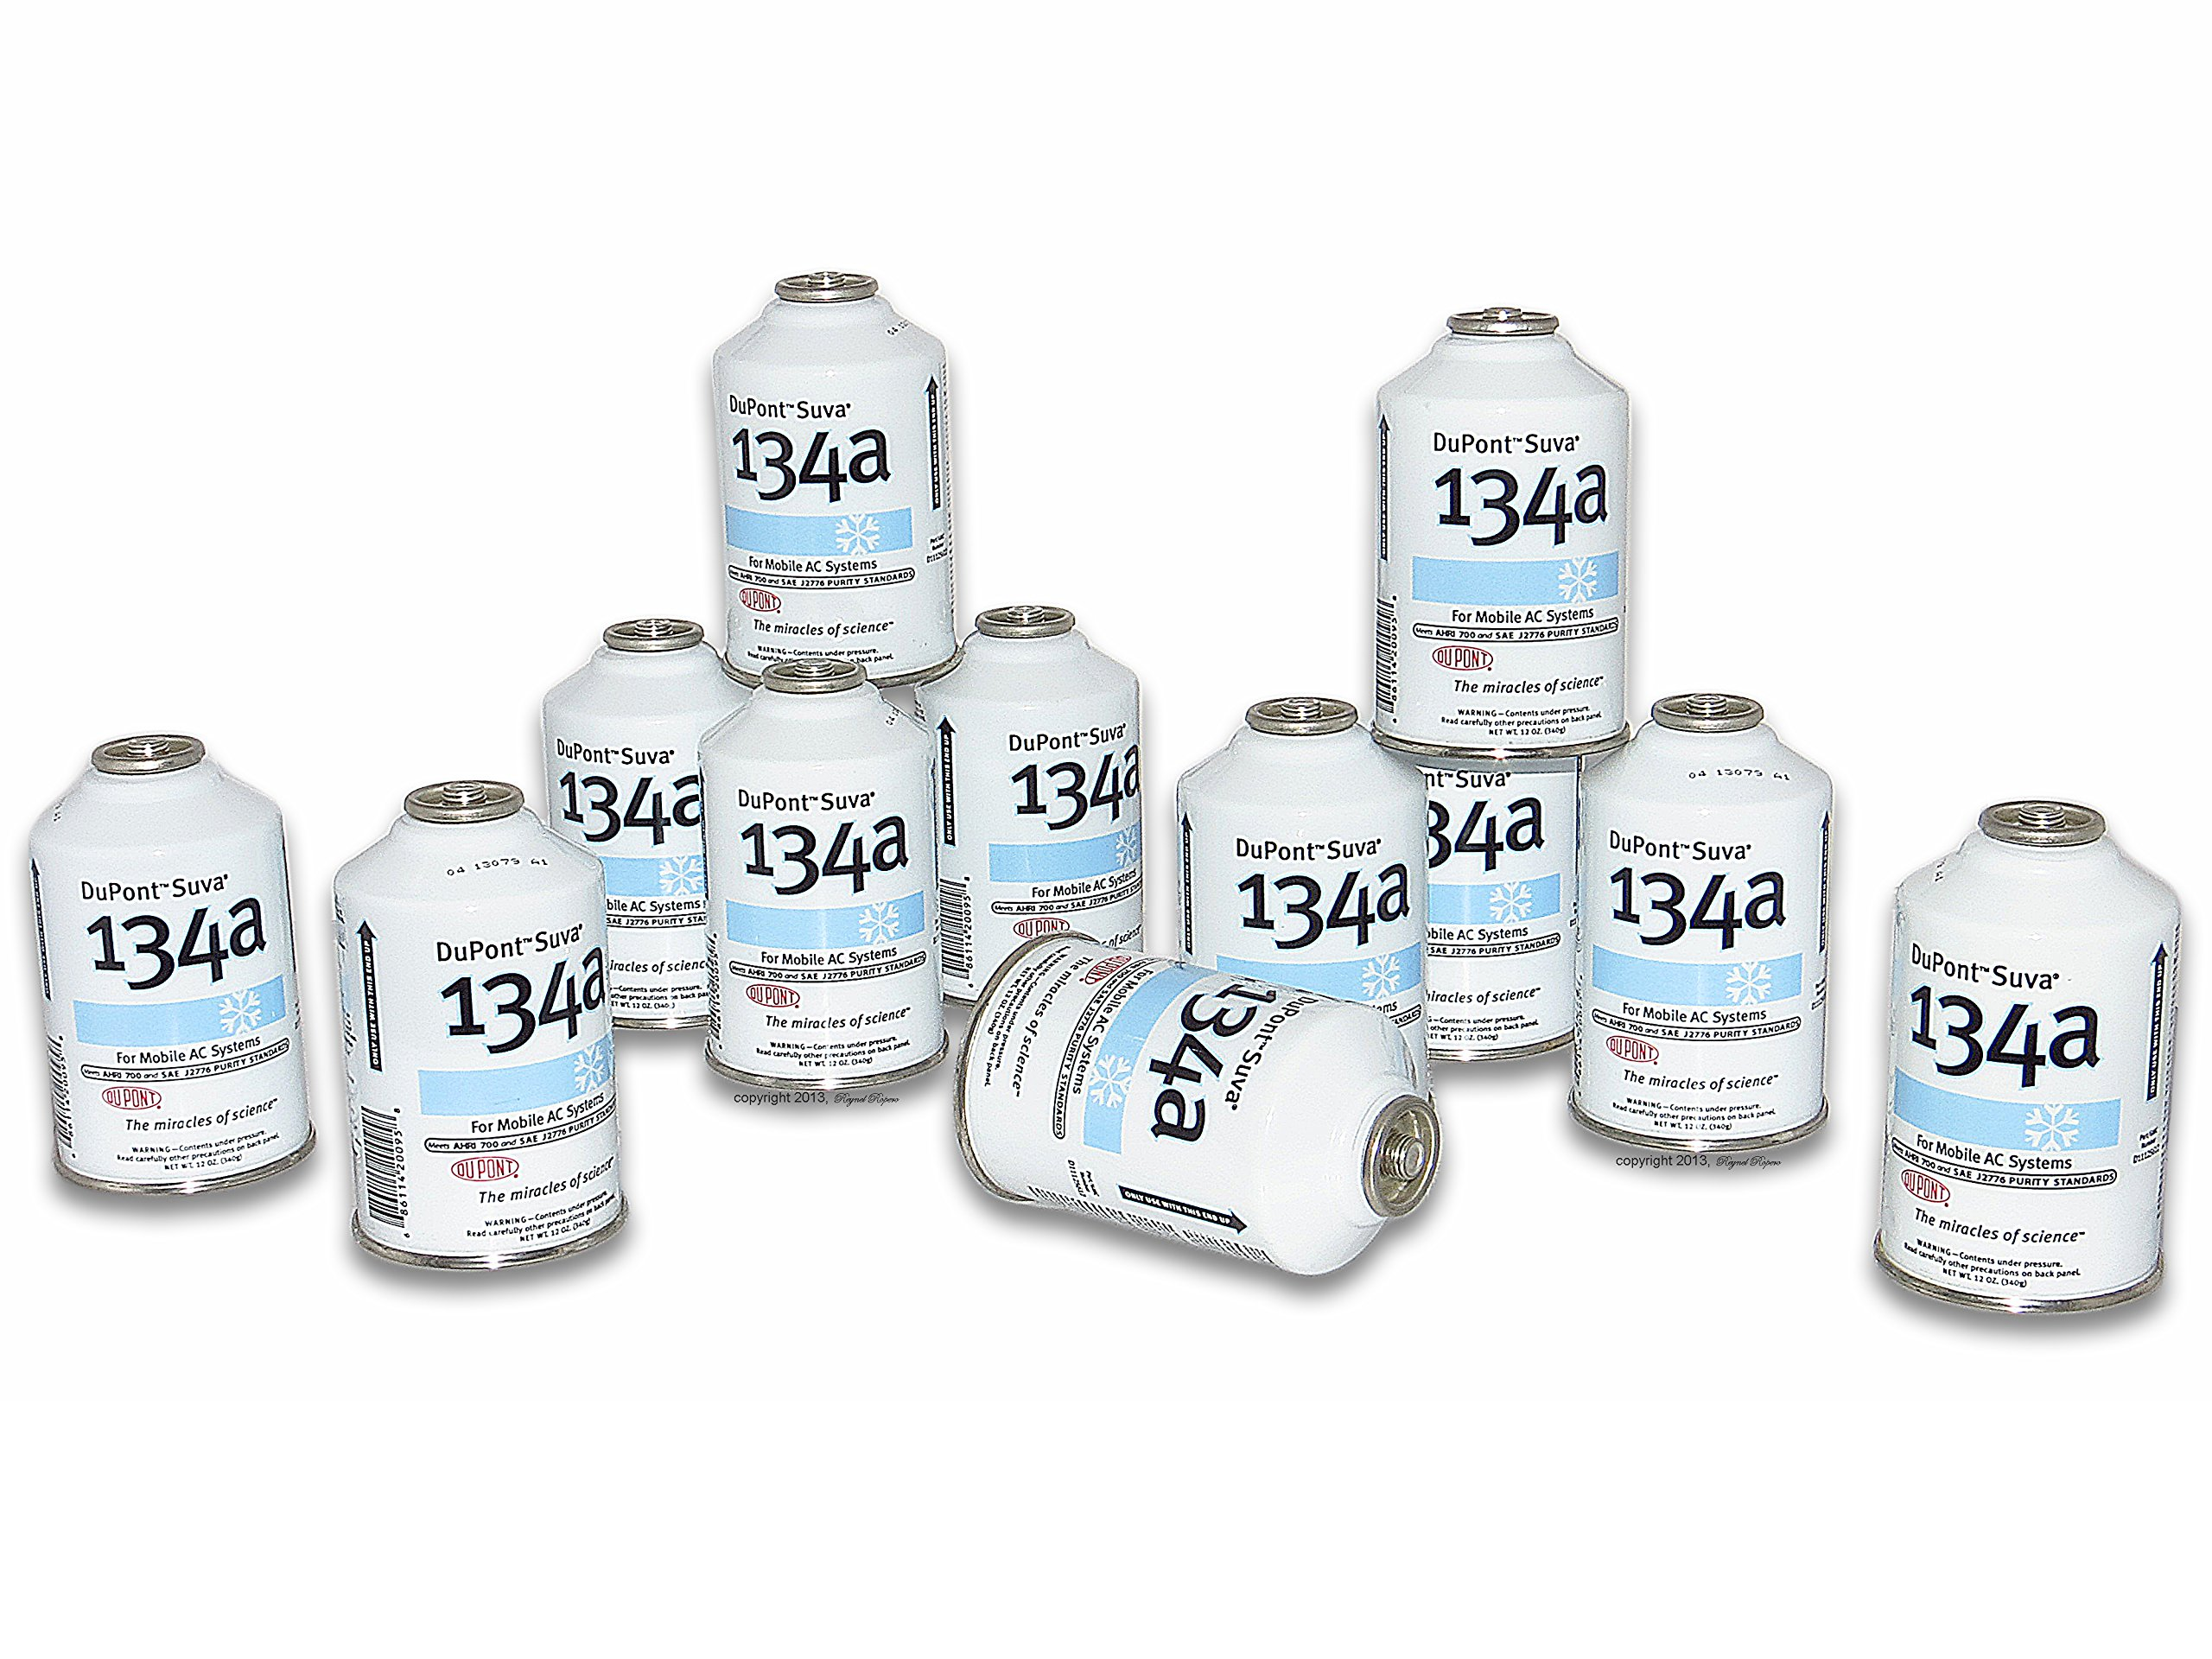 Chemours DuPont Suva 134a Refrigerant, 12 oz., Pack of 12 by DuPont